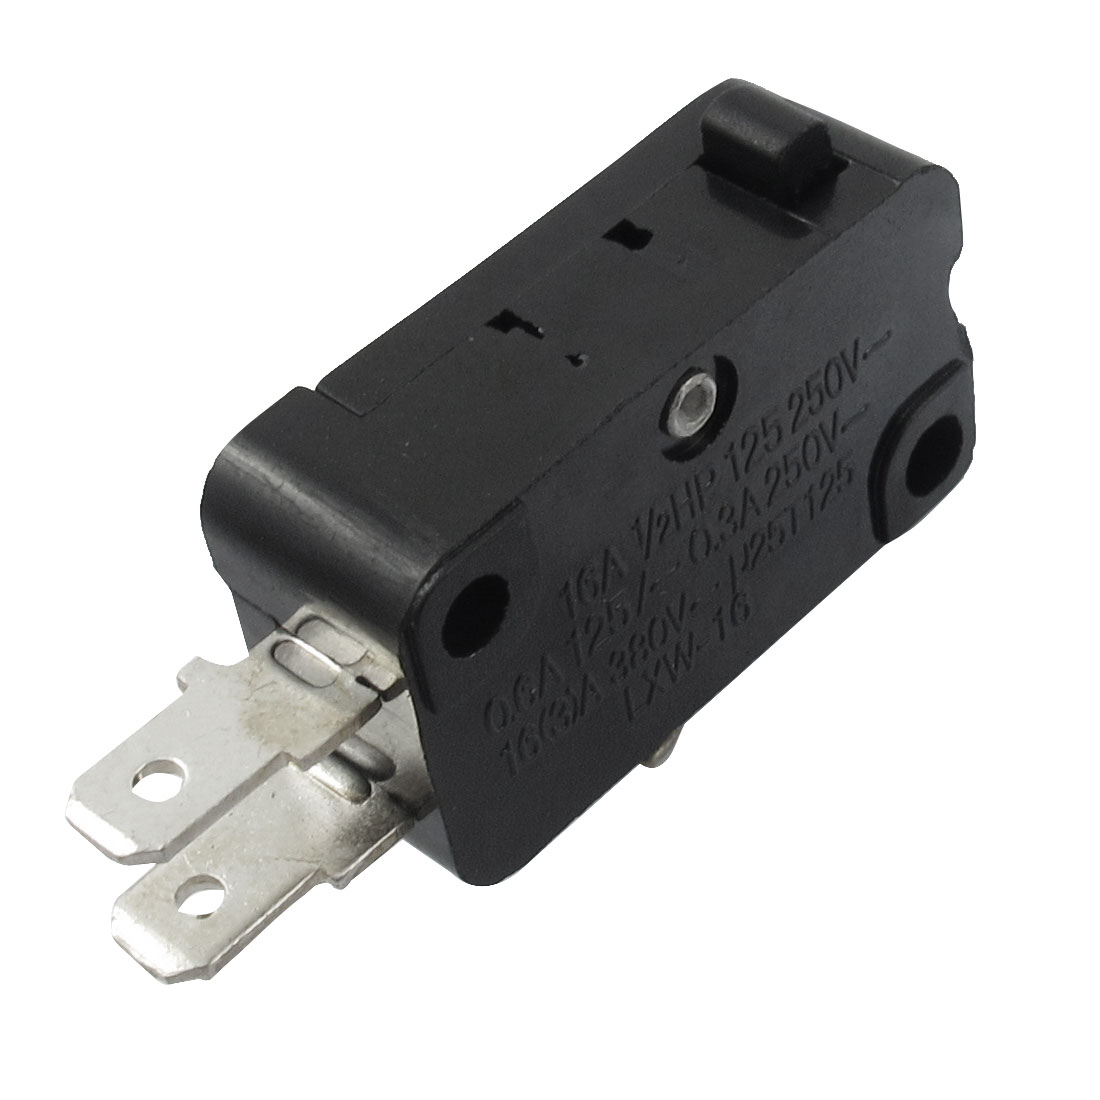 Button Actuator 3-Terminals NO NC Momentary Limited Miniature Micro Switch